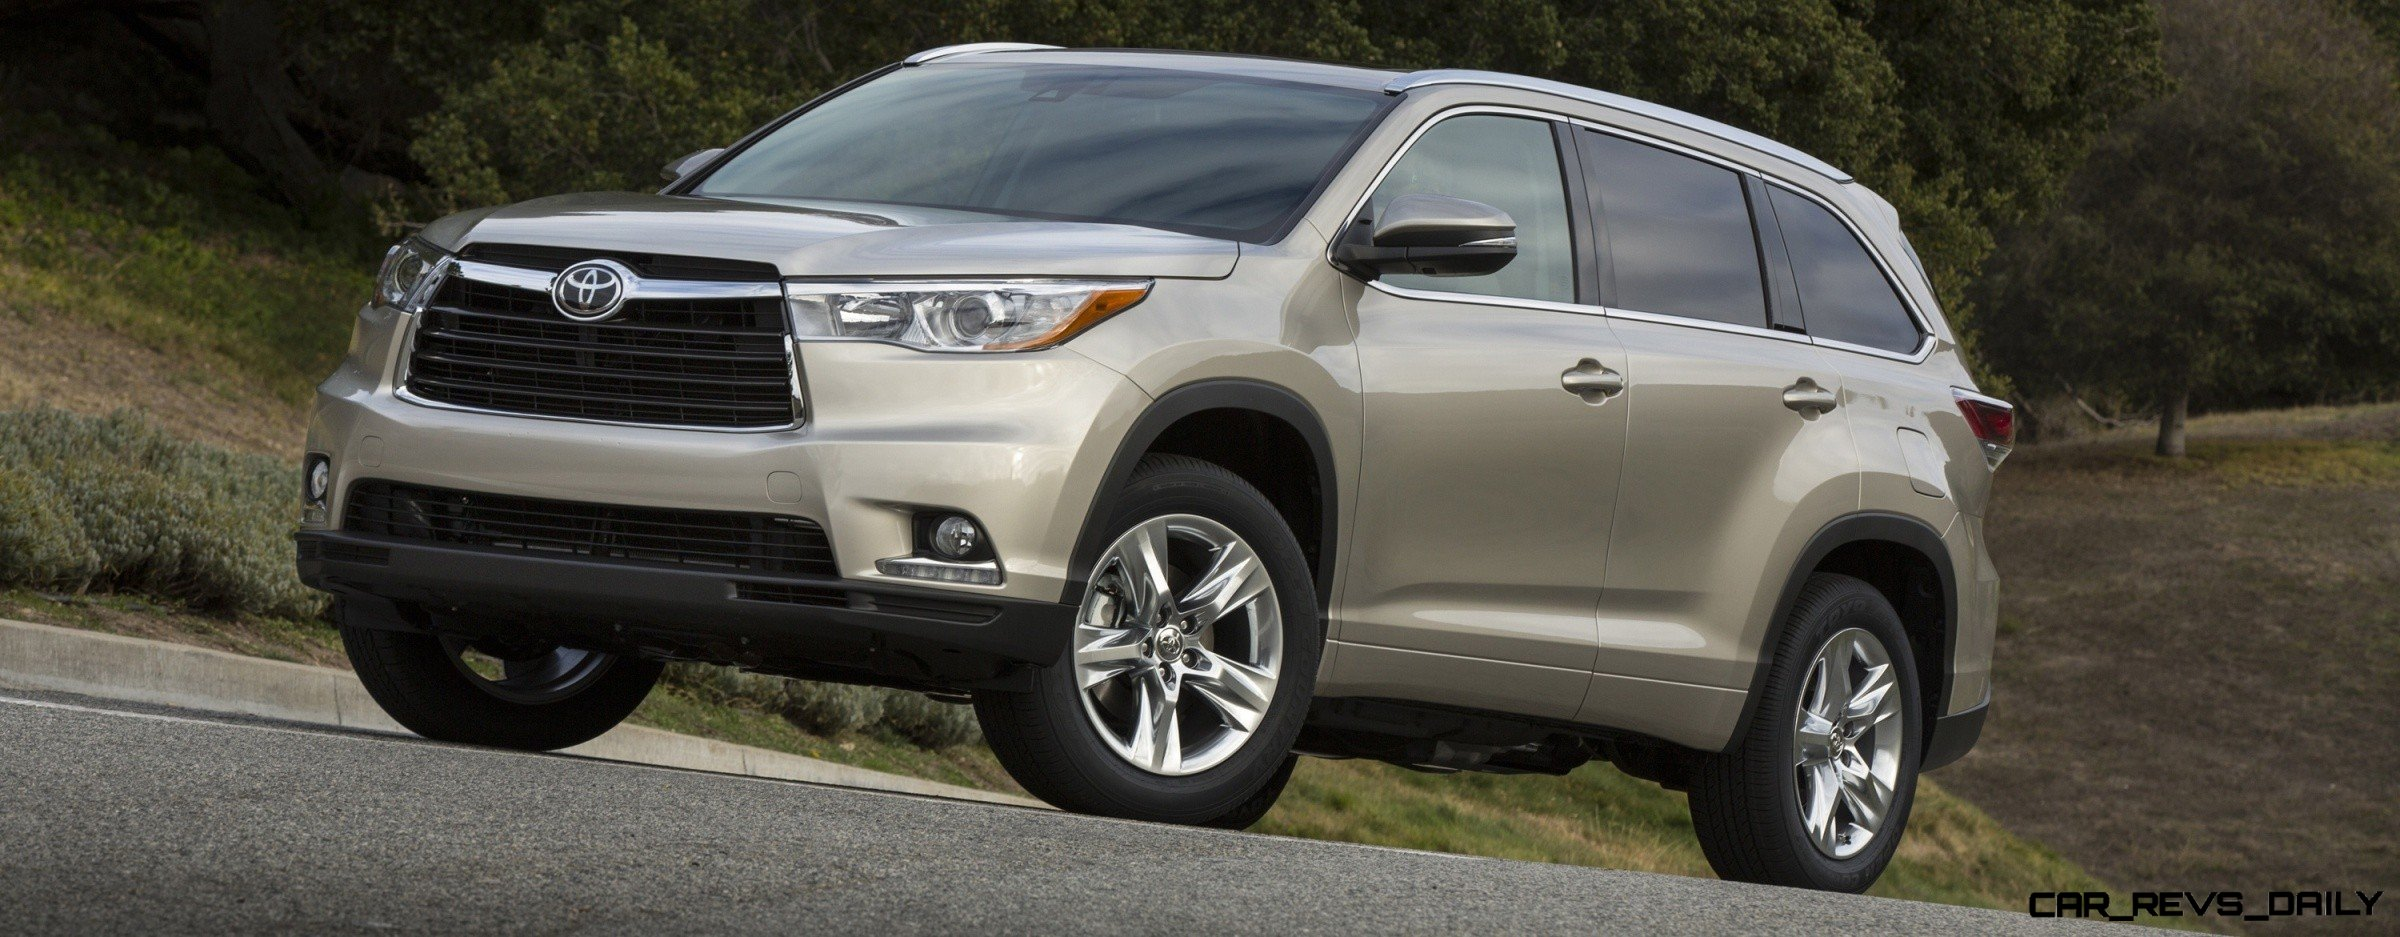 Carrevsdaily 2014 toyota highlander exterior photo36 Toyota highlander 2014 exterior